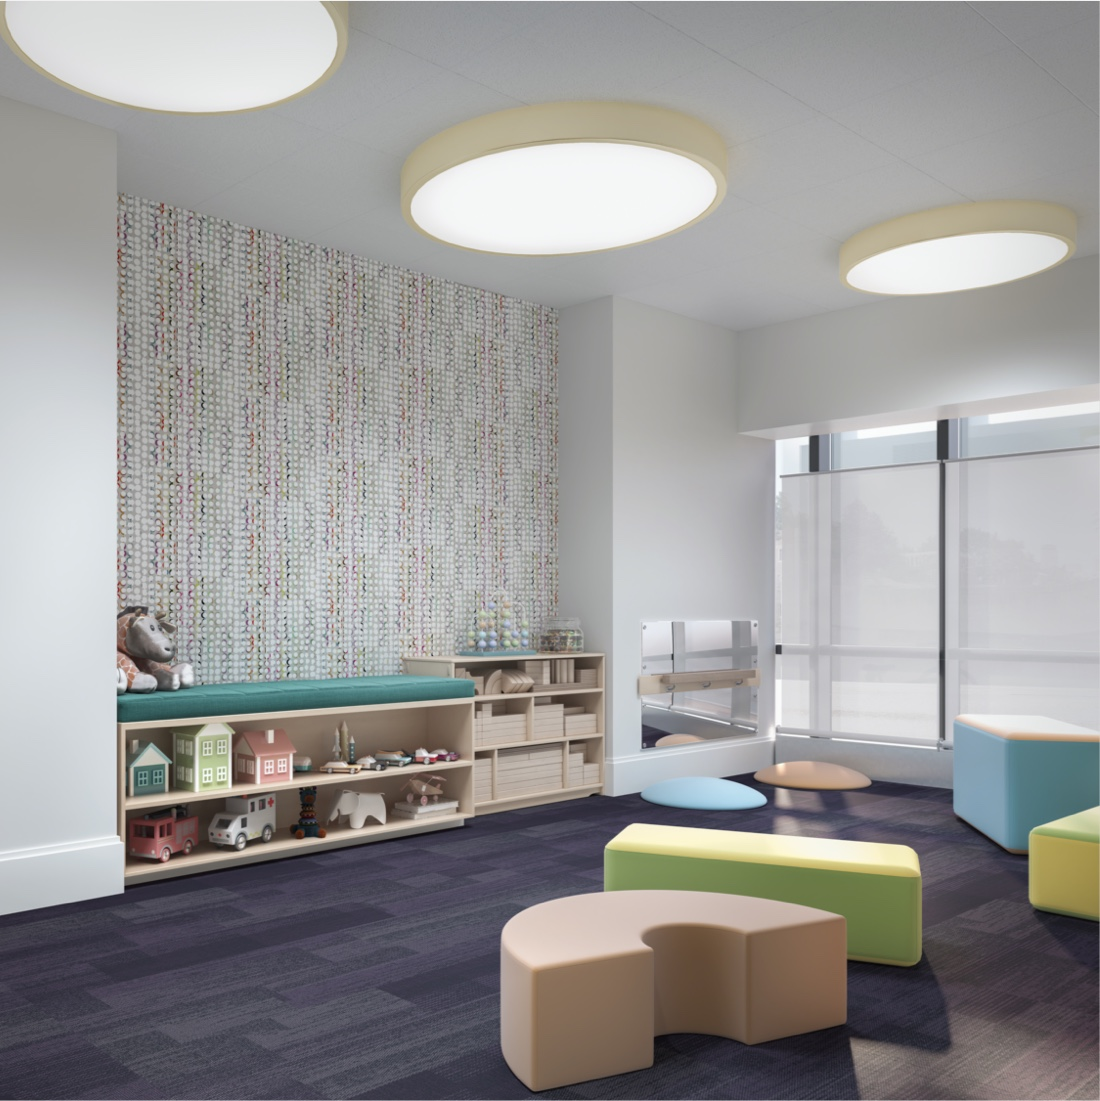 Kids playroom area with colorful seating blocks and toys